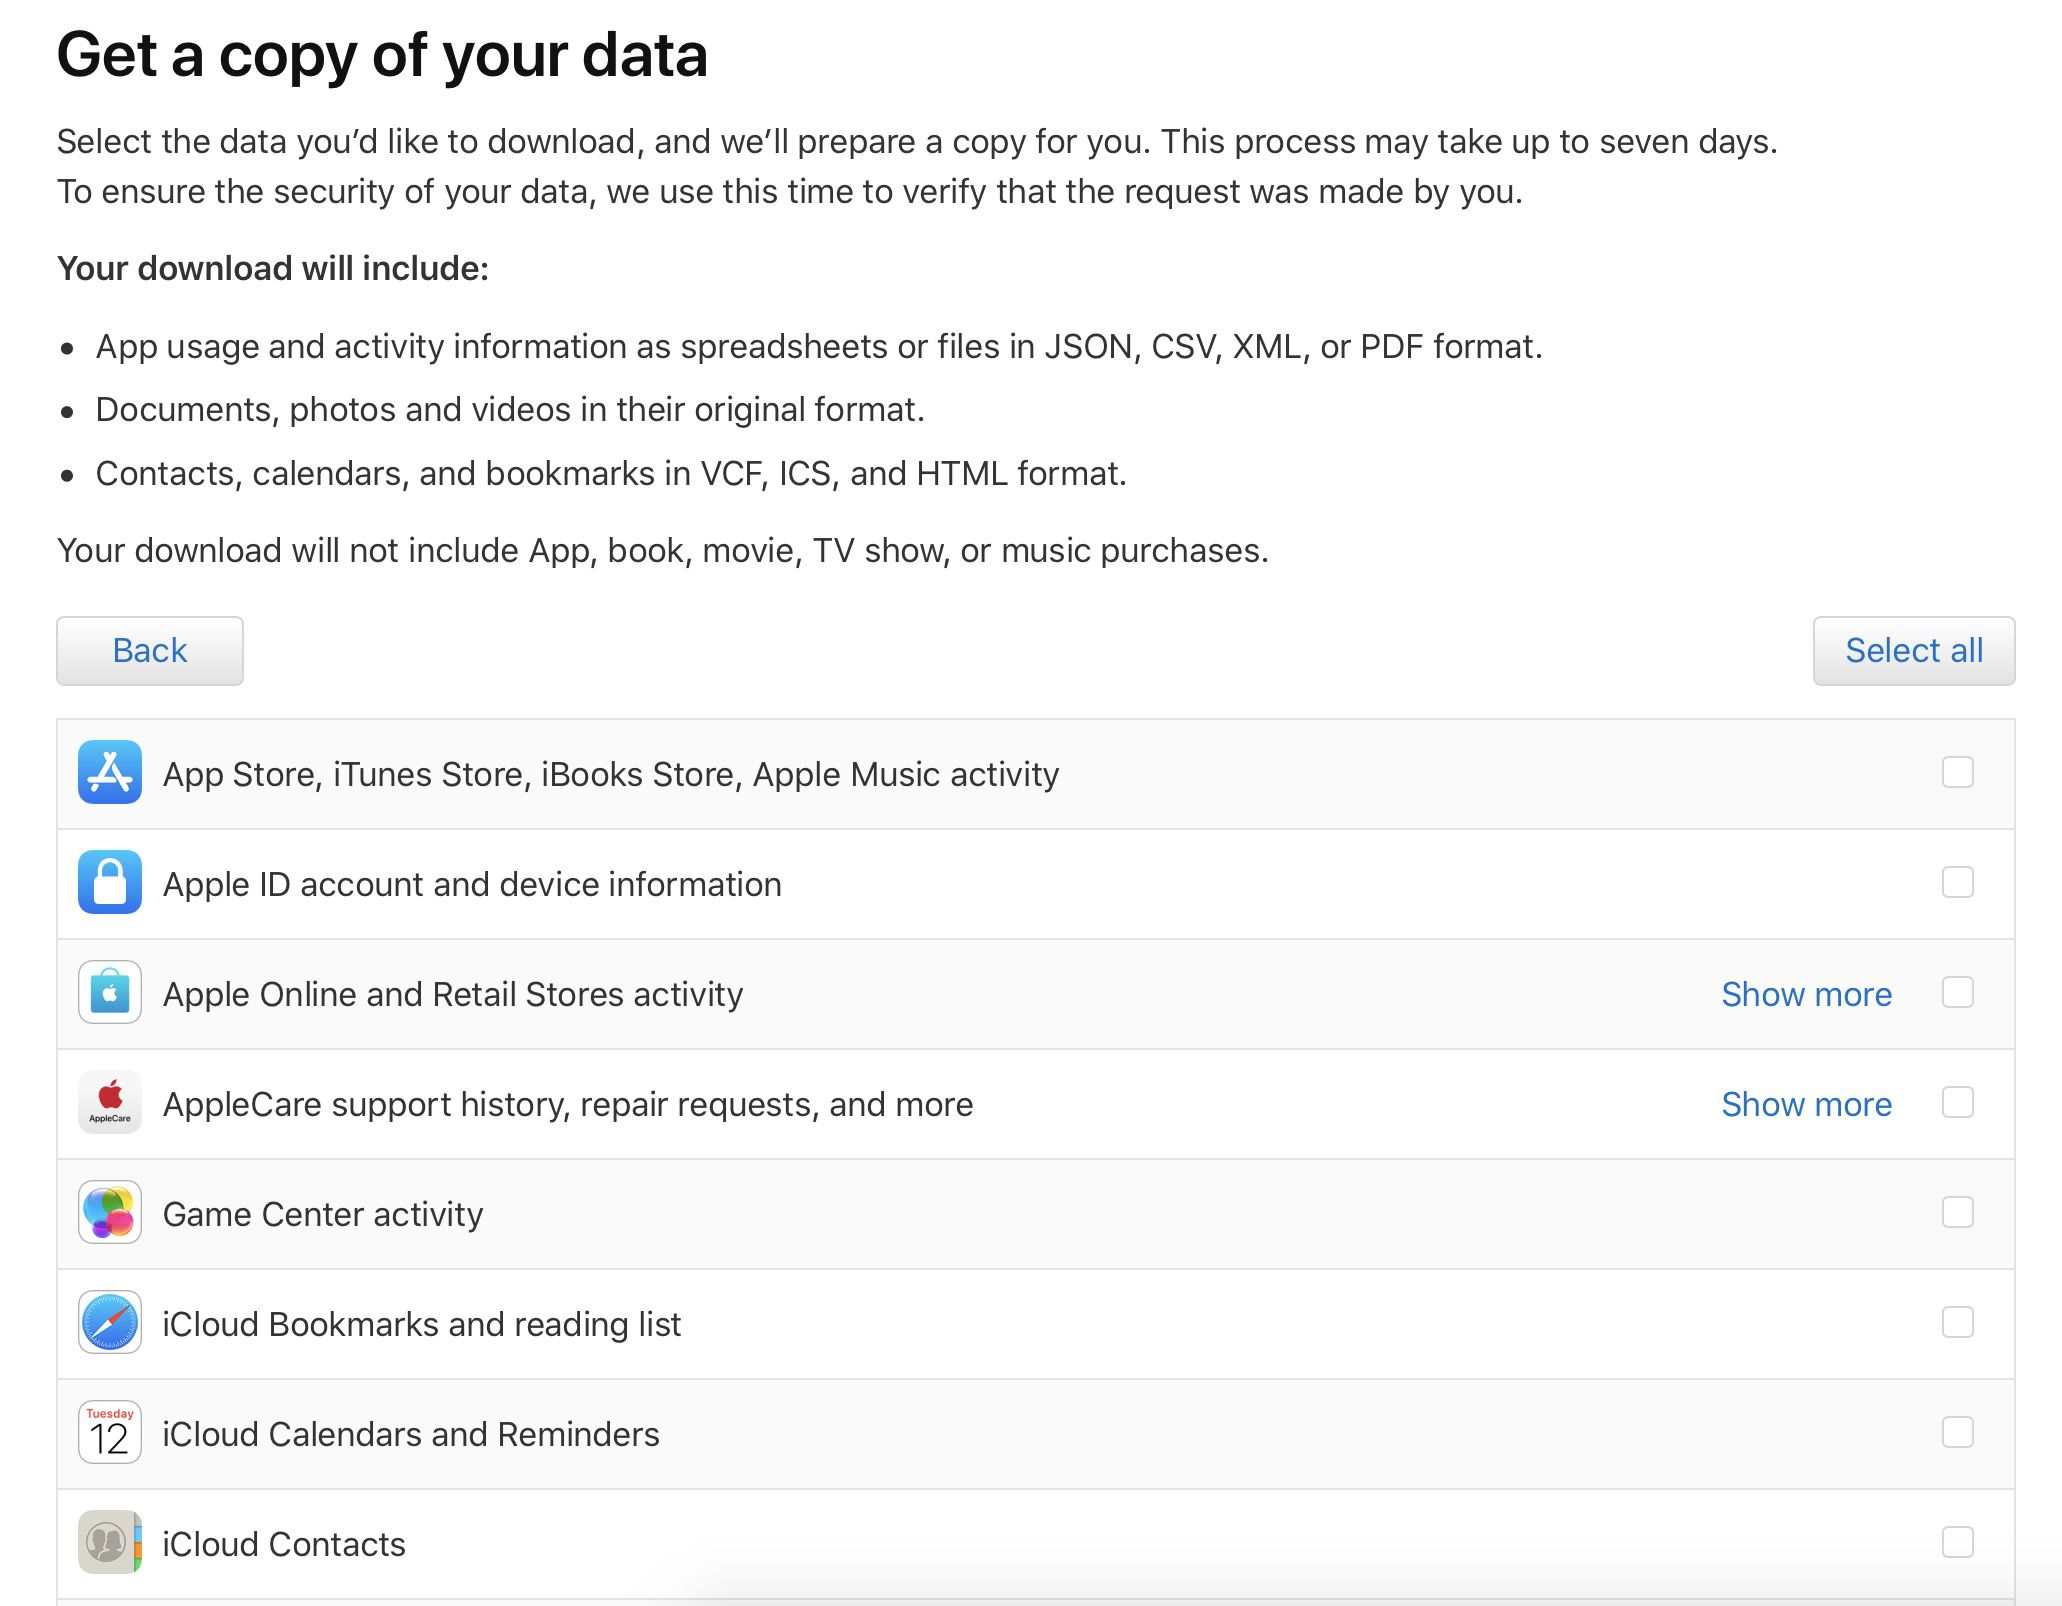 personal data from Apple